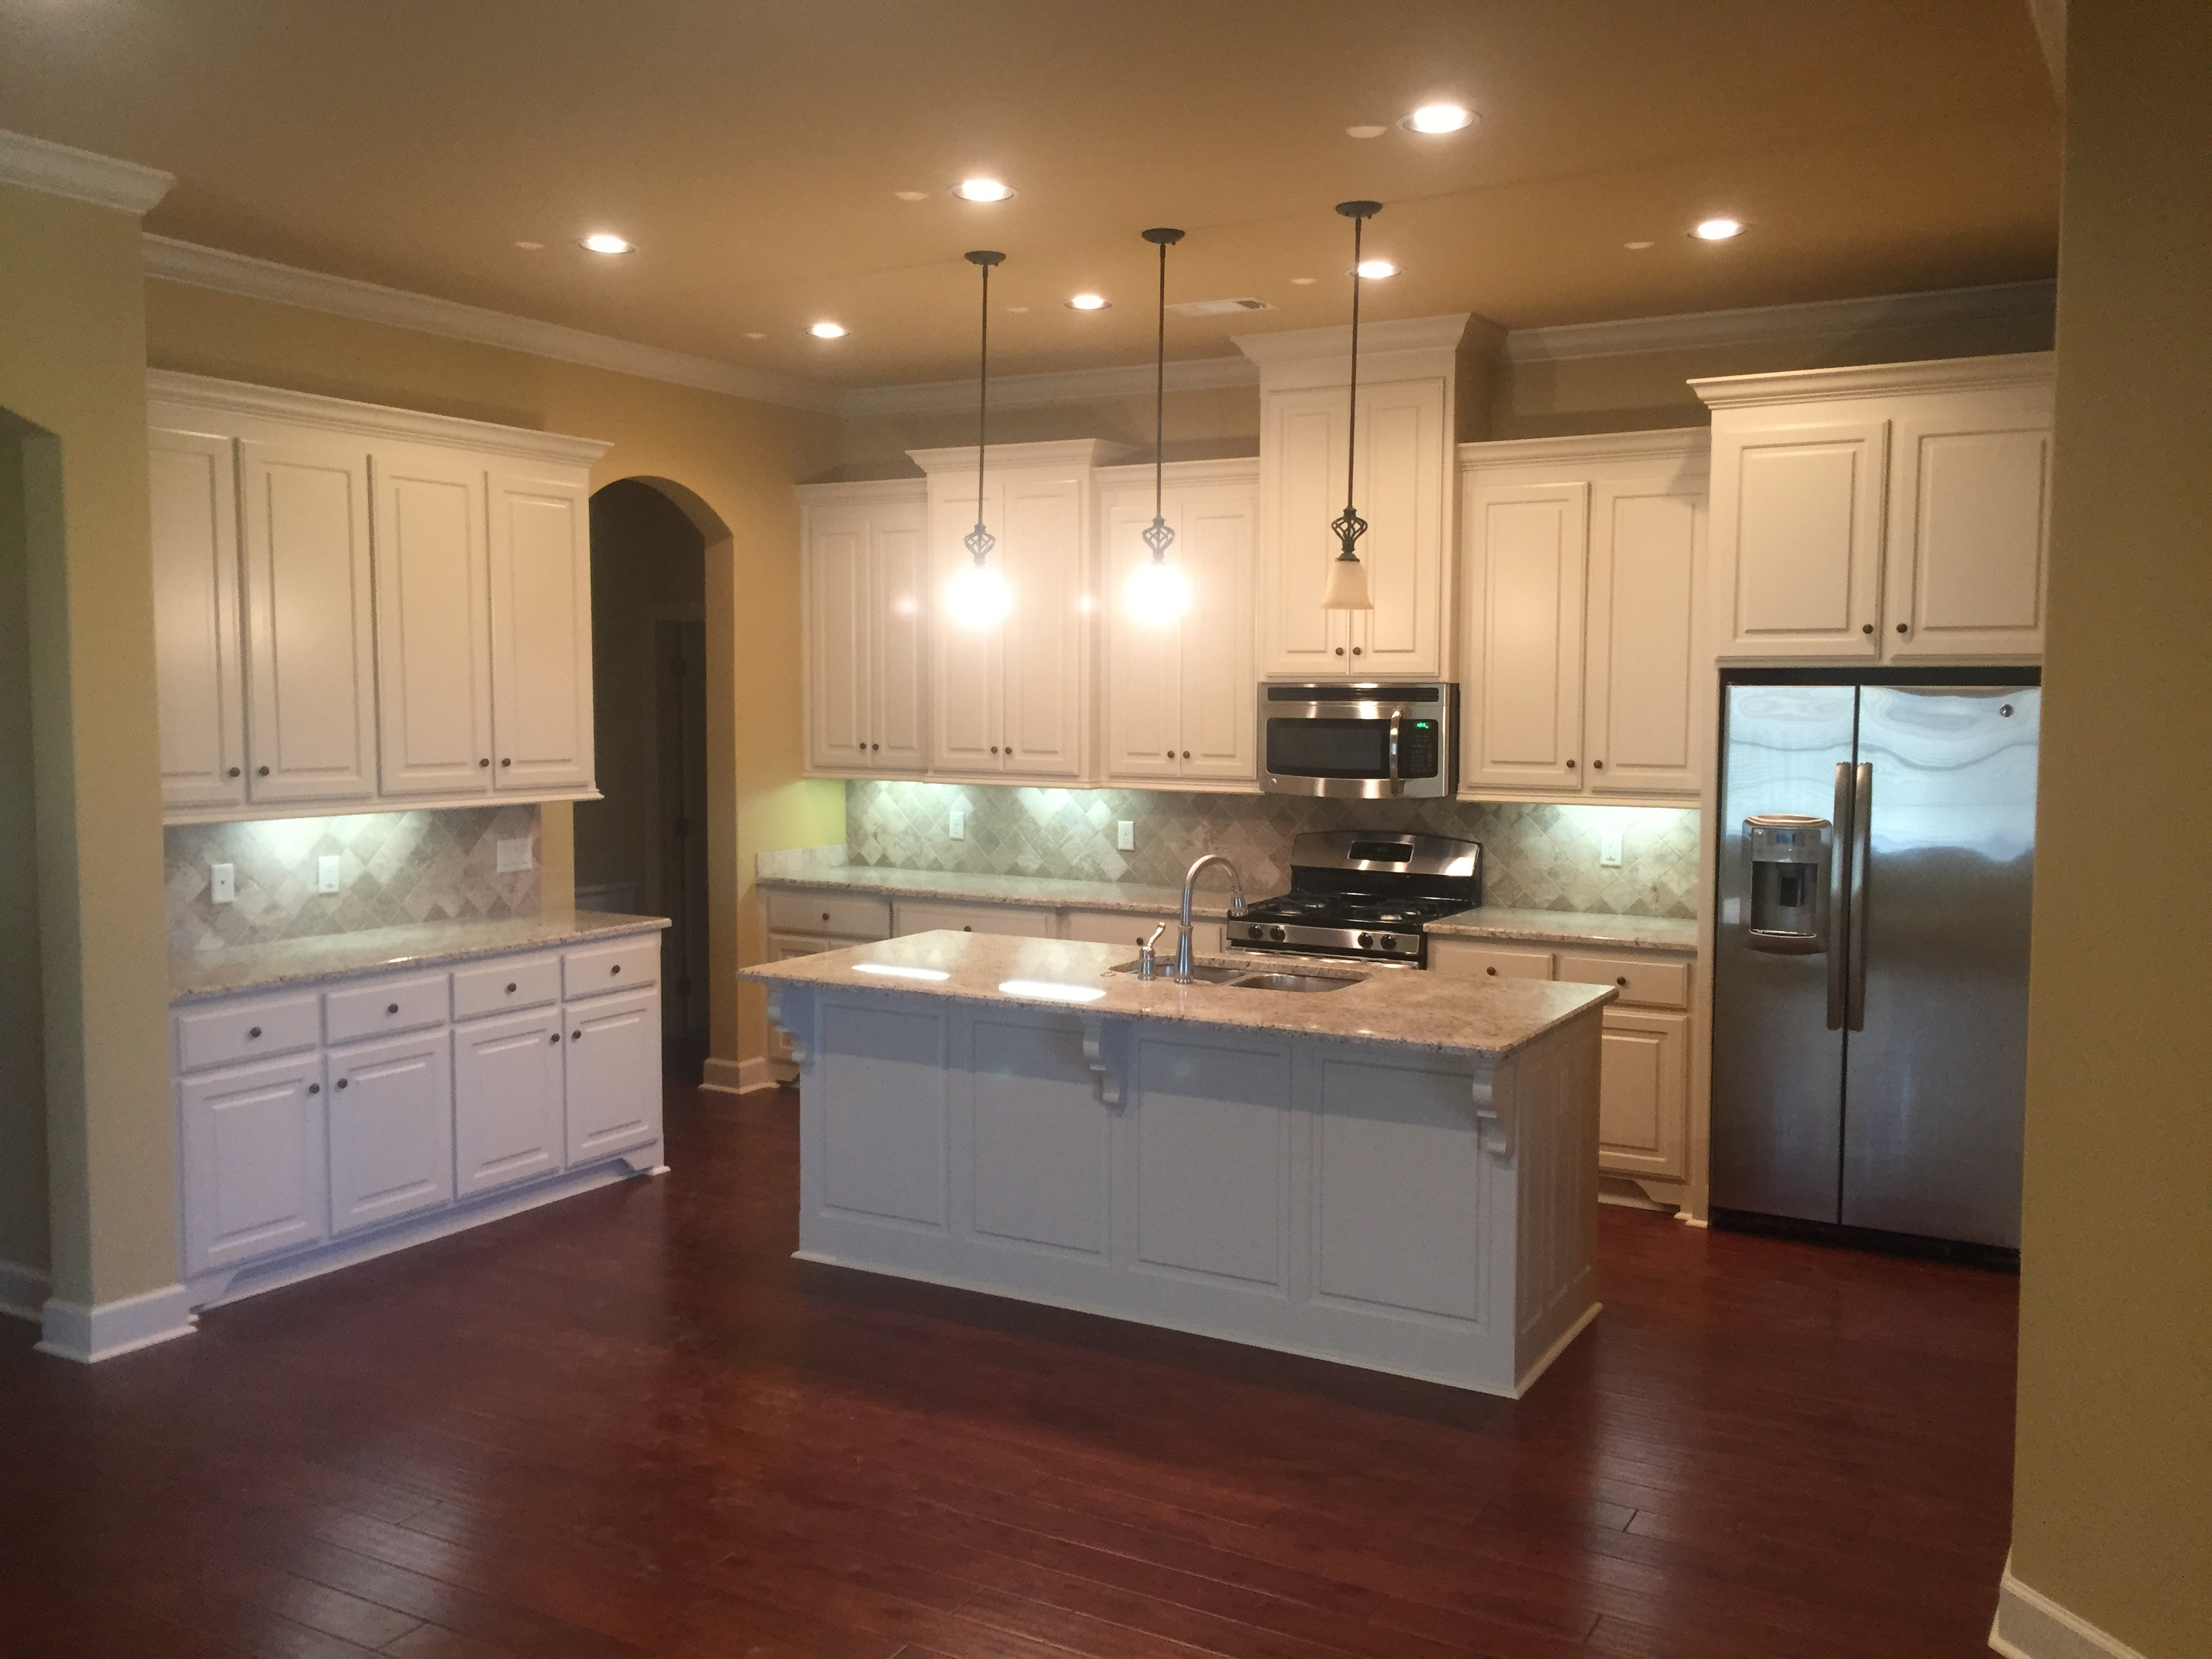 Speck Cabinets Custom Cabinets For The Little Rock Area